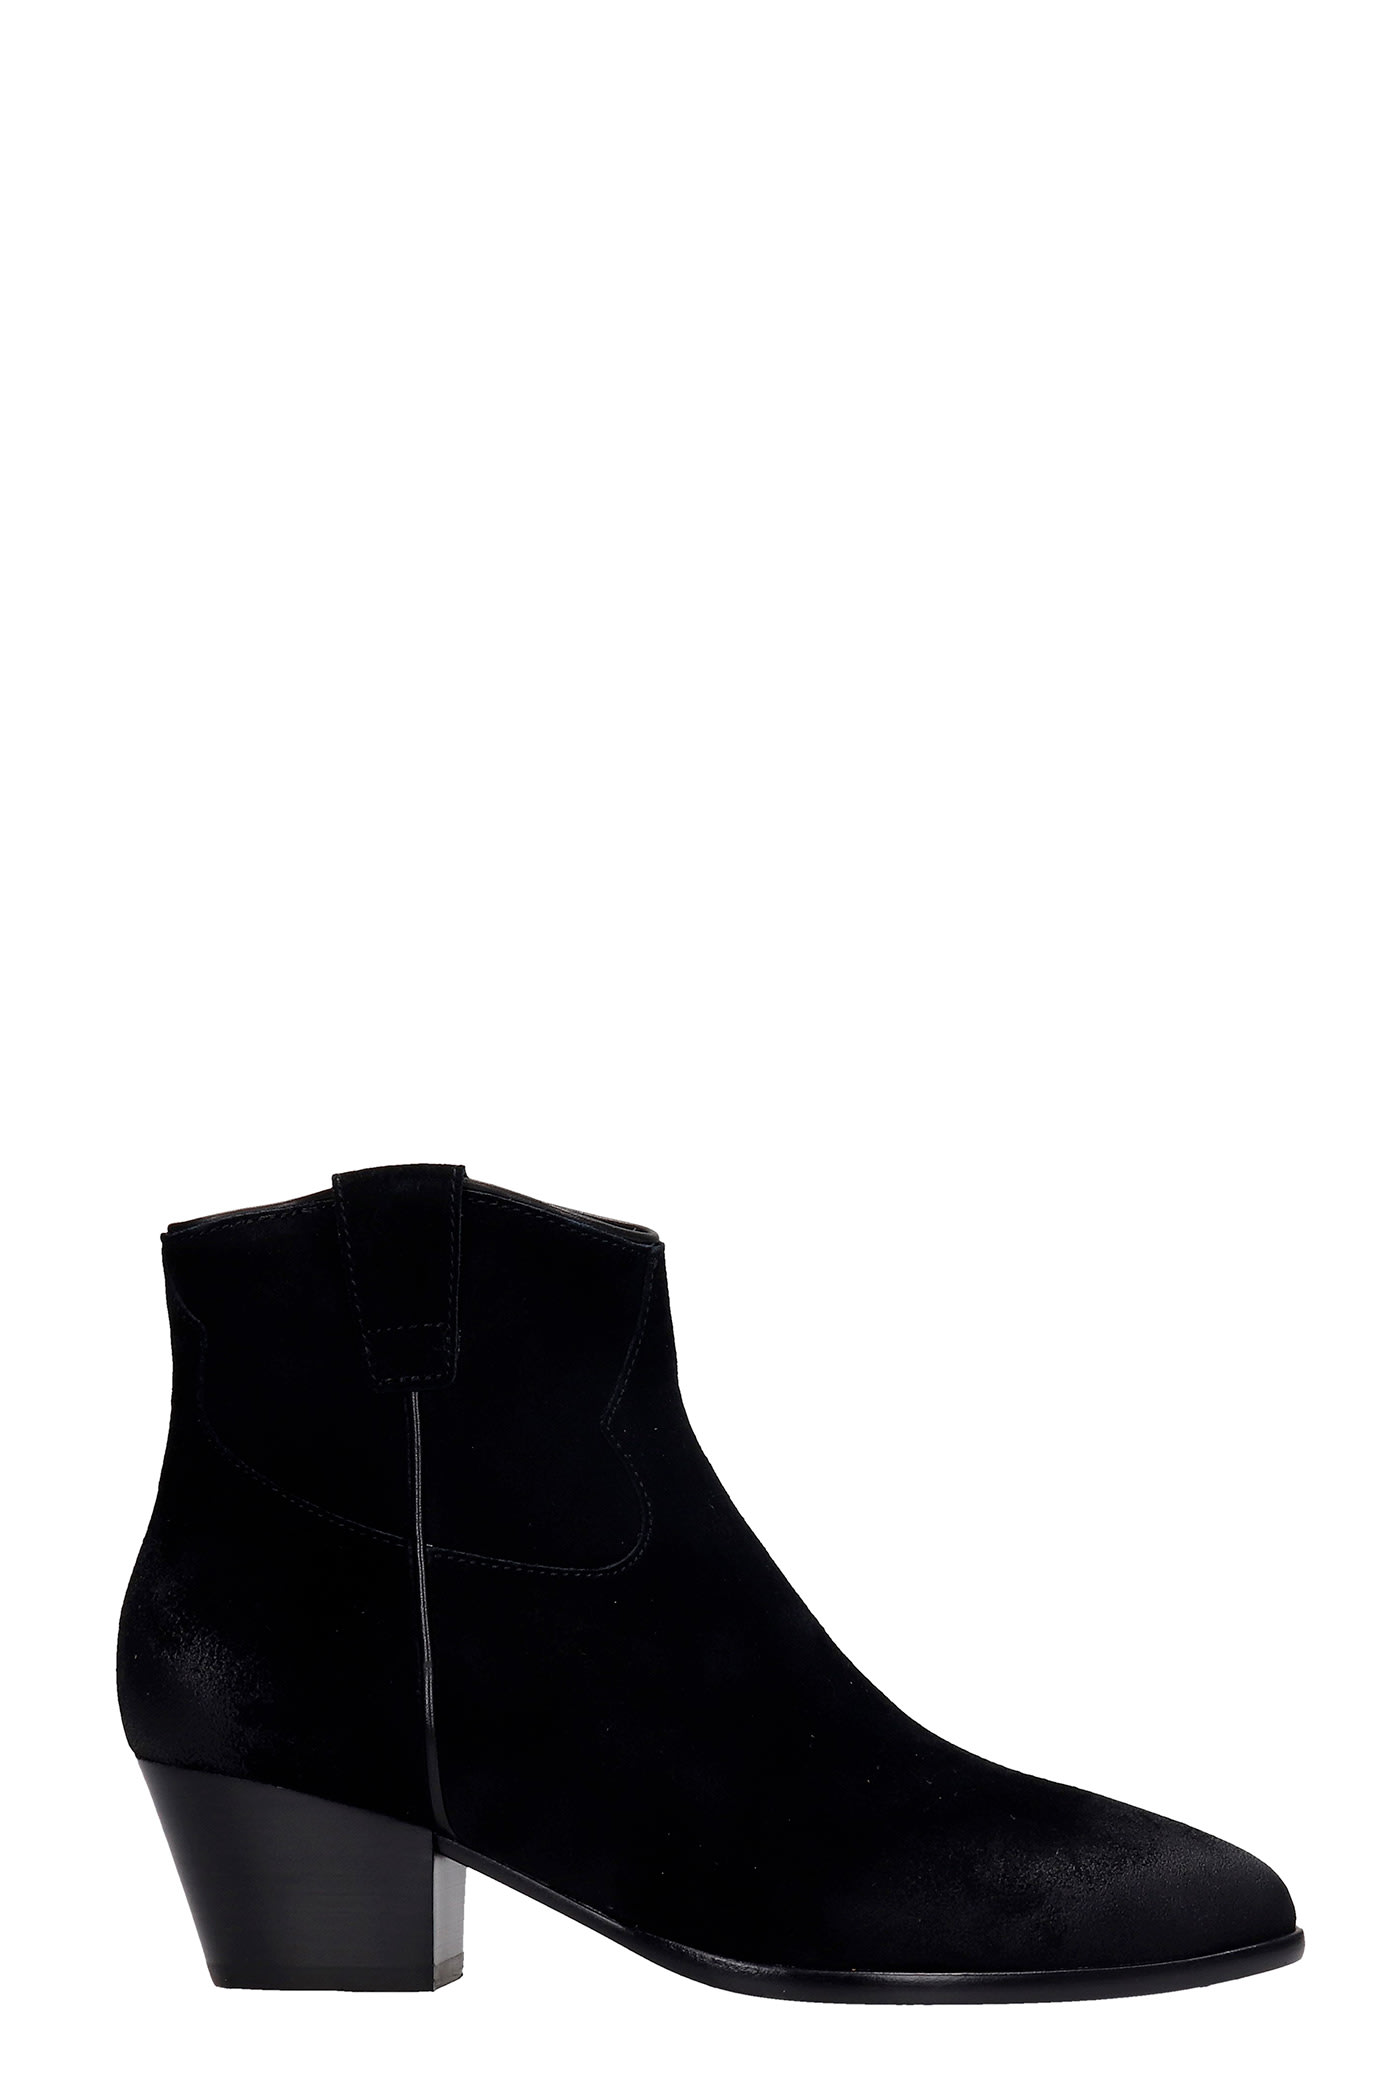 Ash Houston 02 Texan Ankle Boots In Black Suede